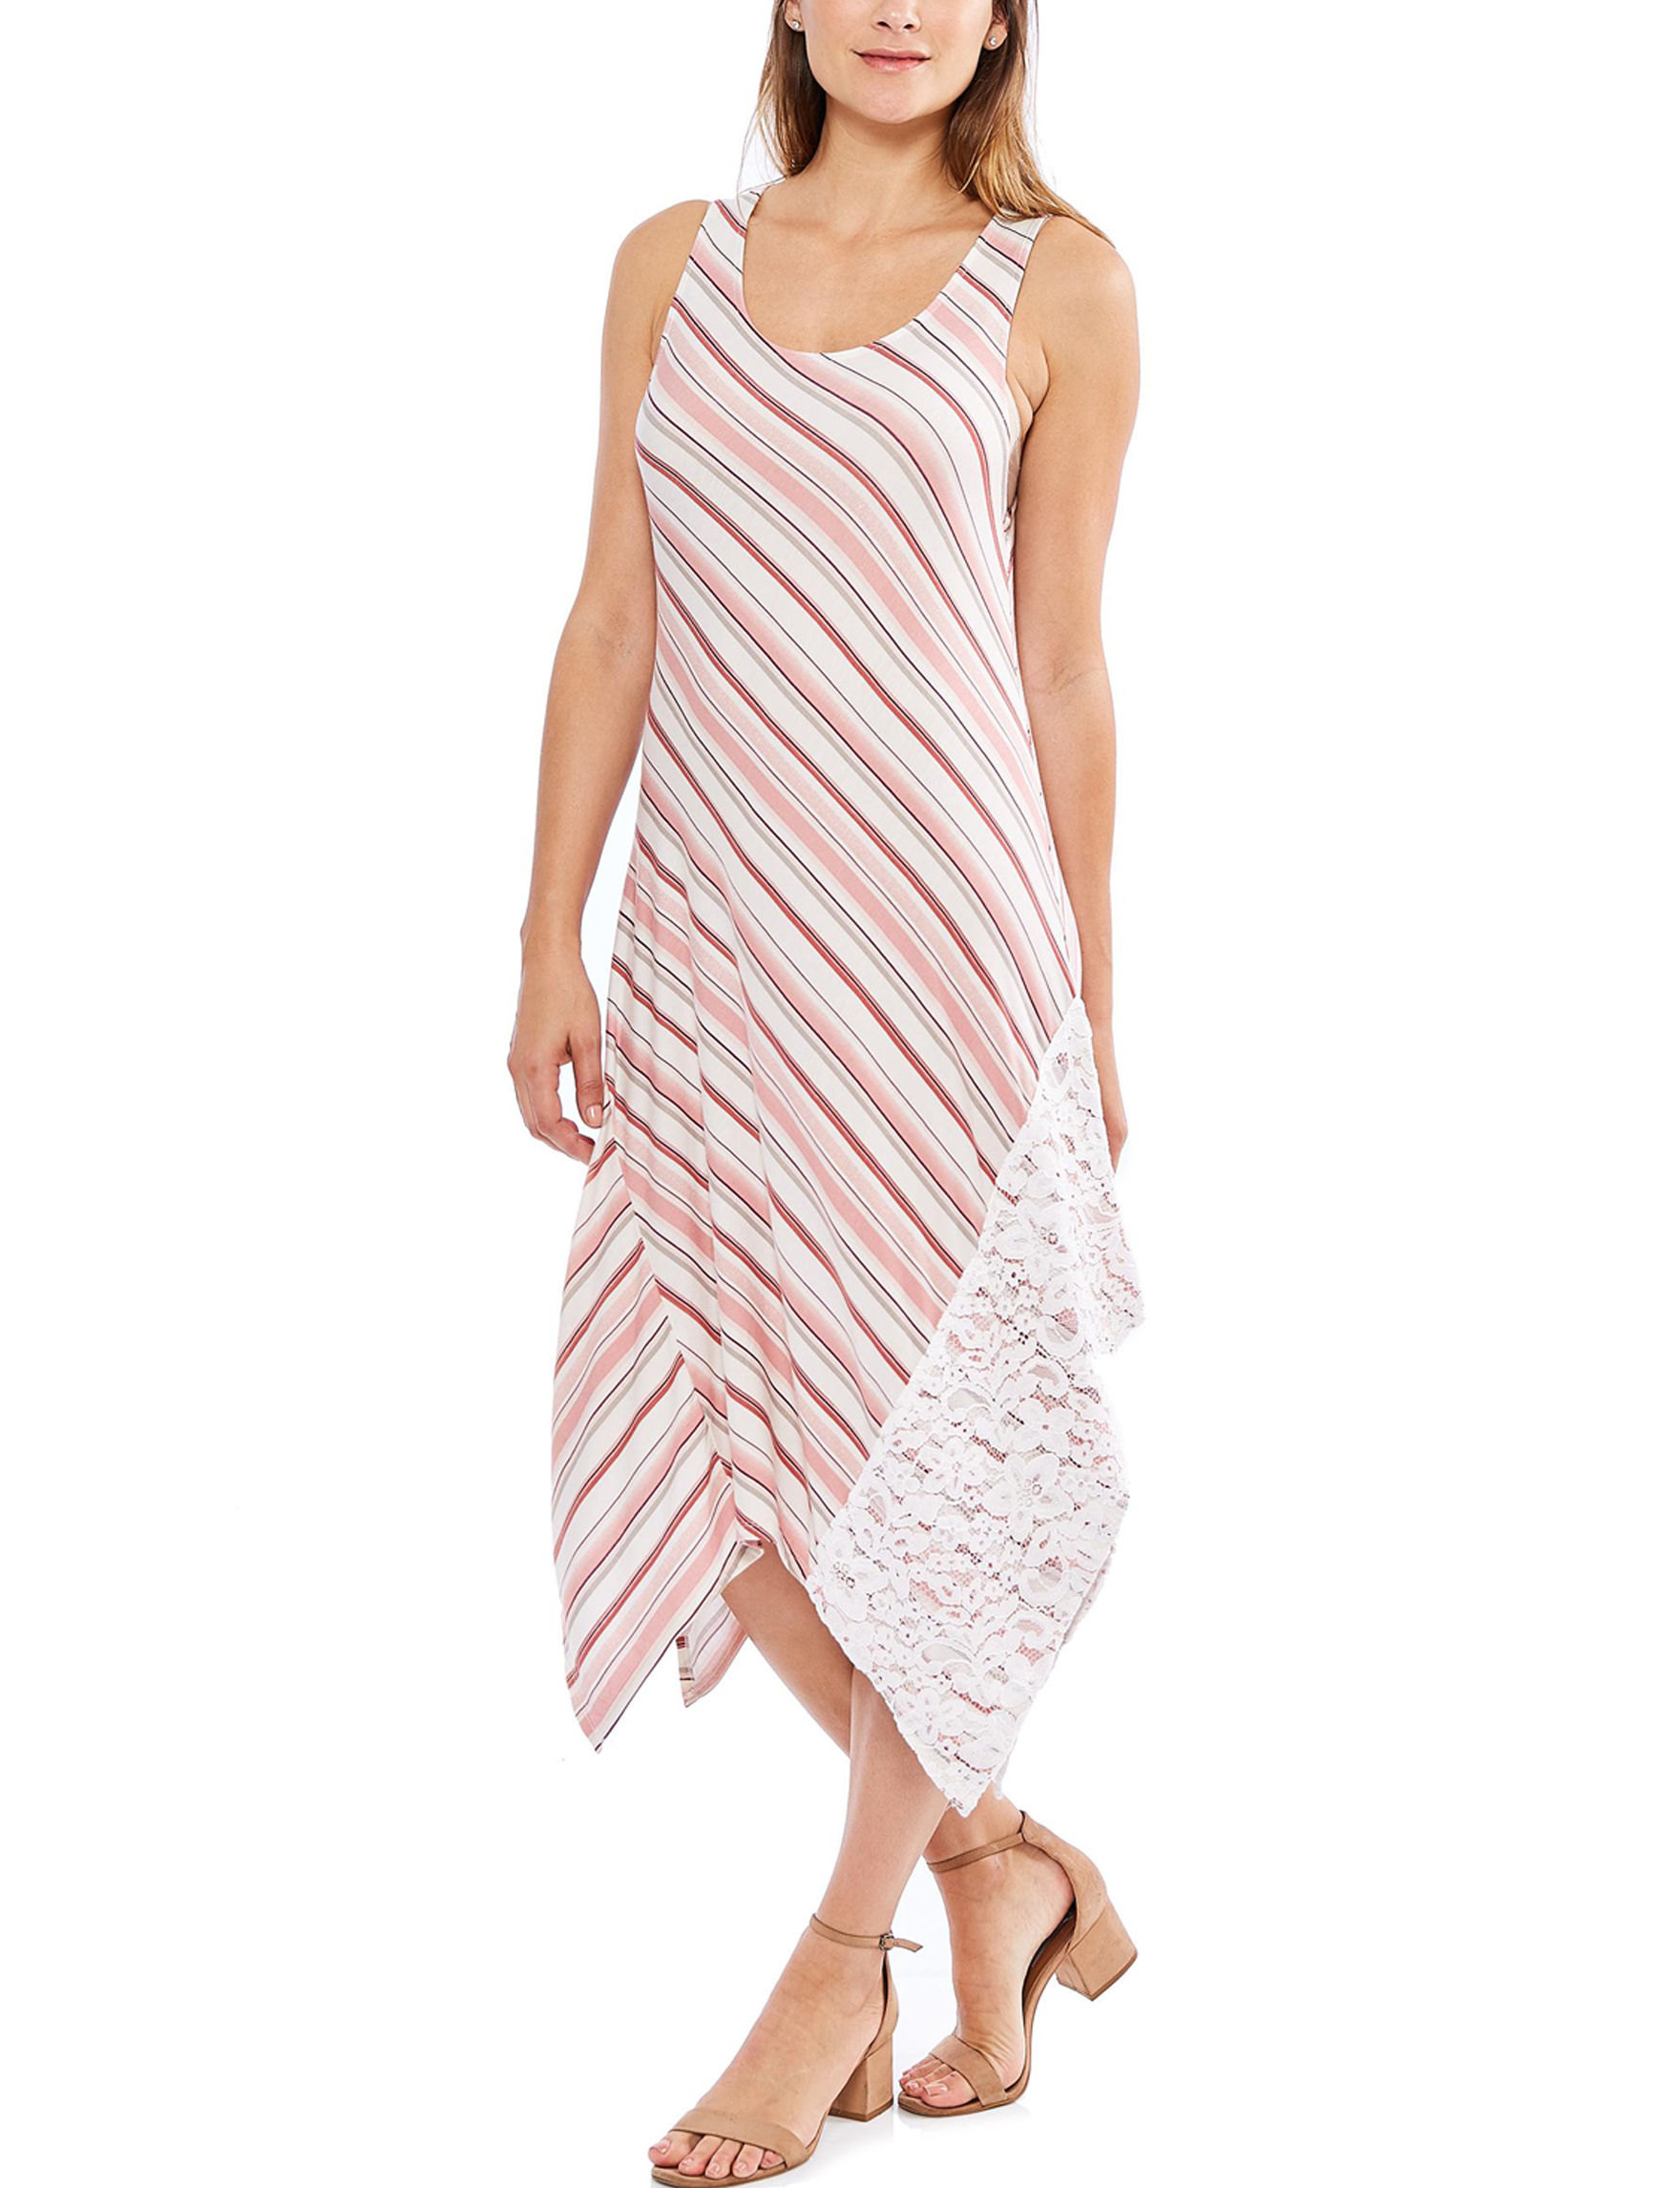 Skyes The Limit Red Stripe Everyday & Casual Shift Dresses Sundresses